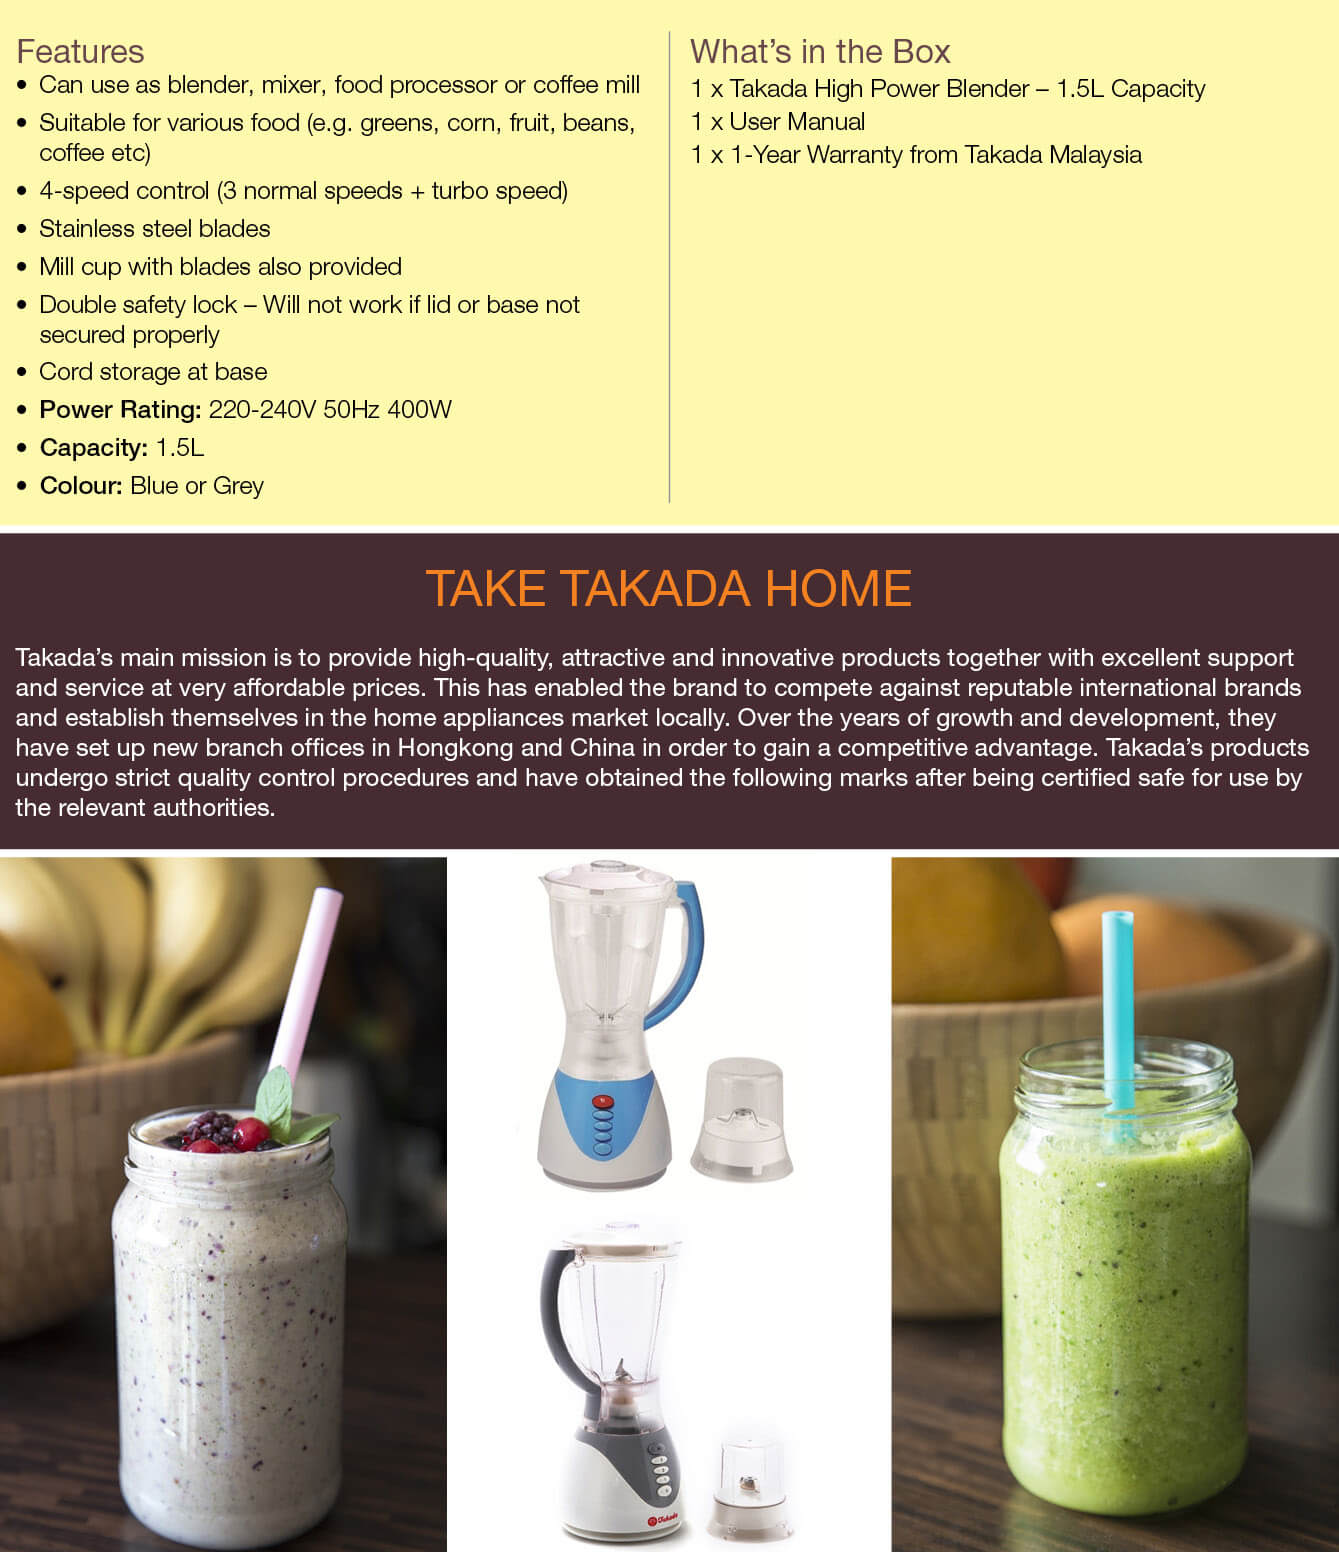 takada-isb-731-high-power-blender